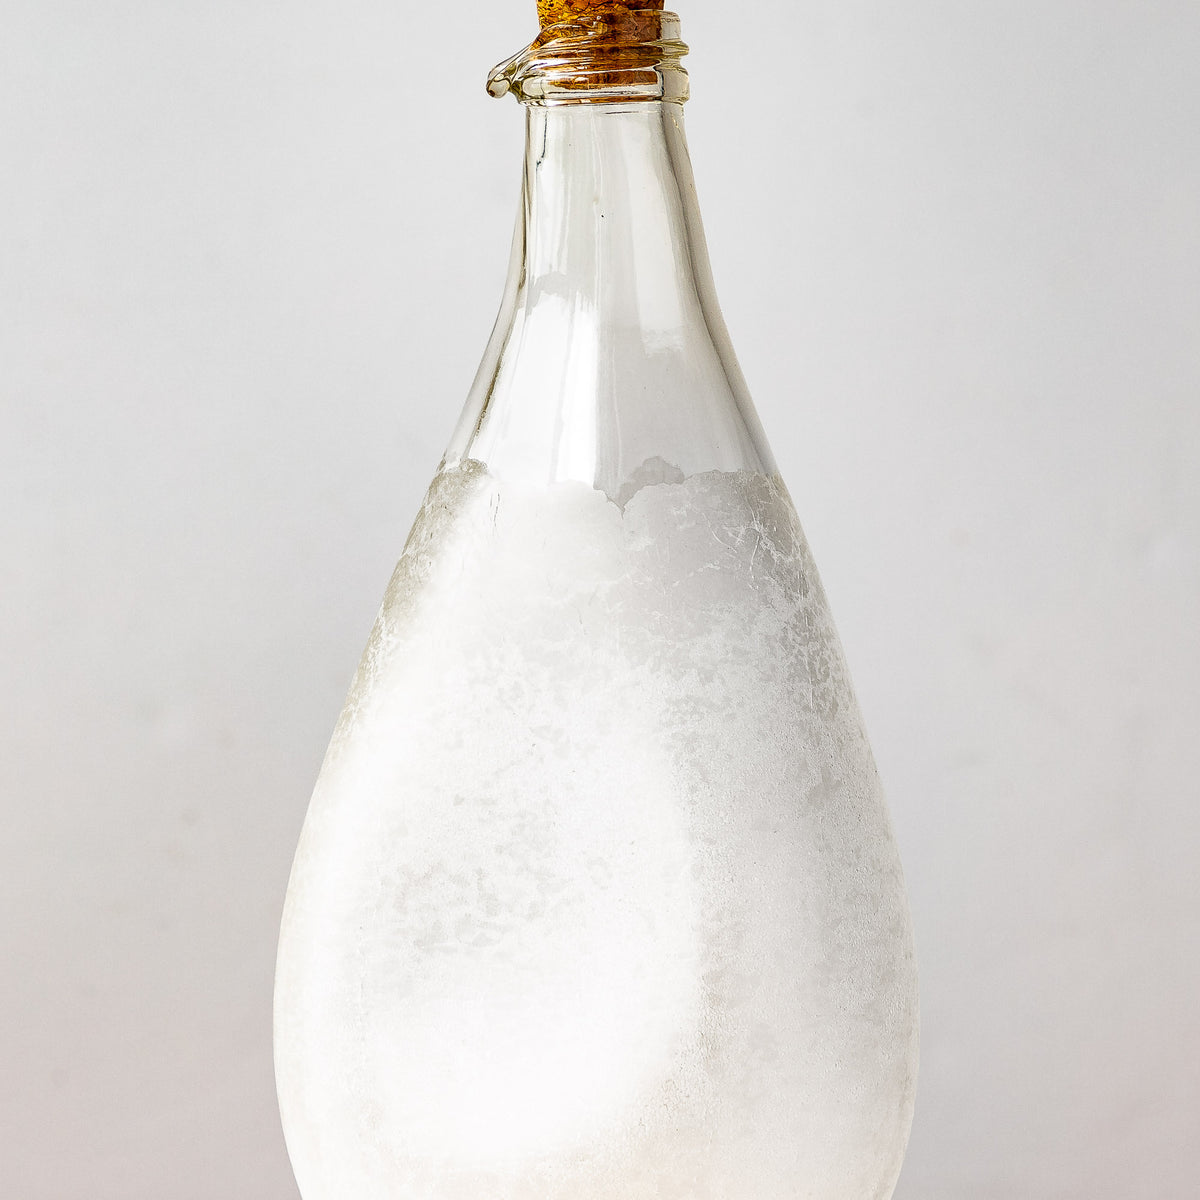 Detail - Latté Texture - Hand Blown Glass Oil Dispenser Bottle - Sold by Chic & Basta